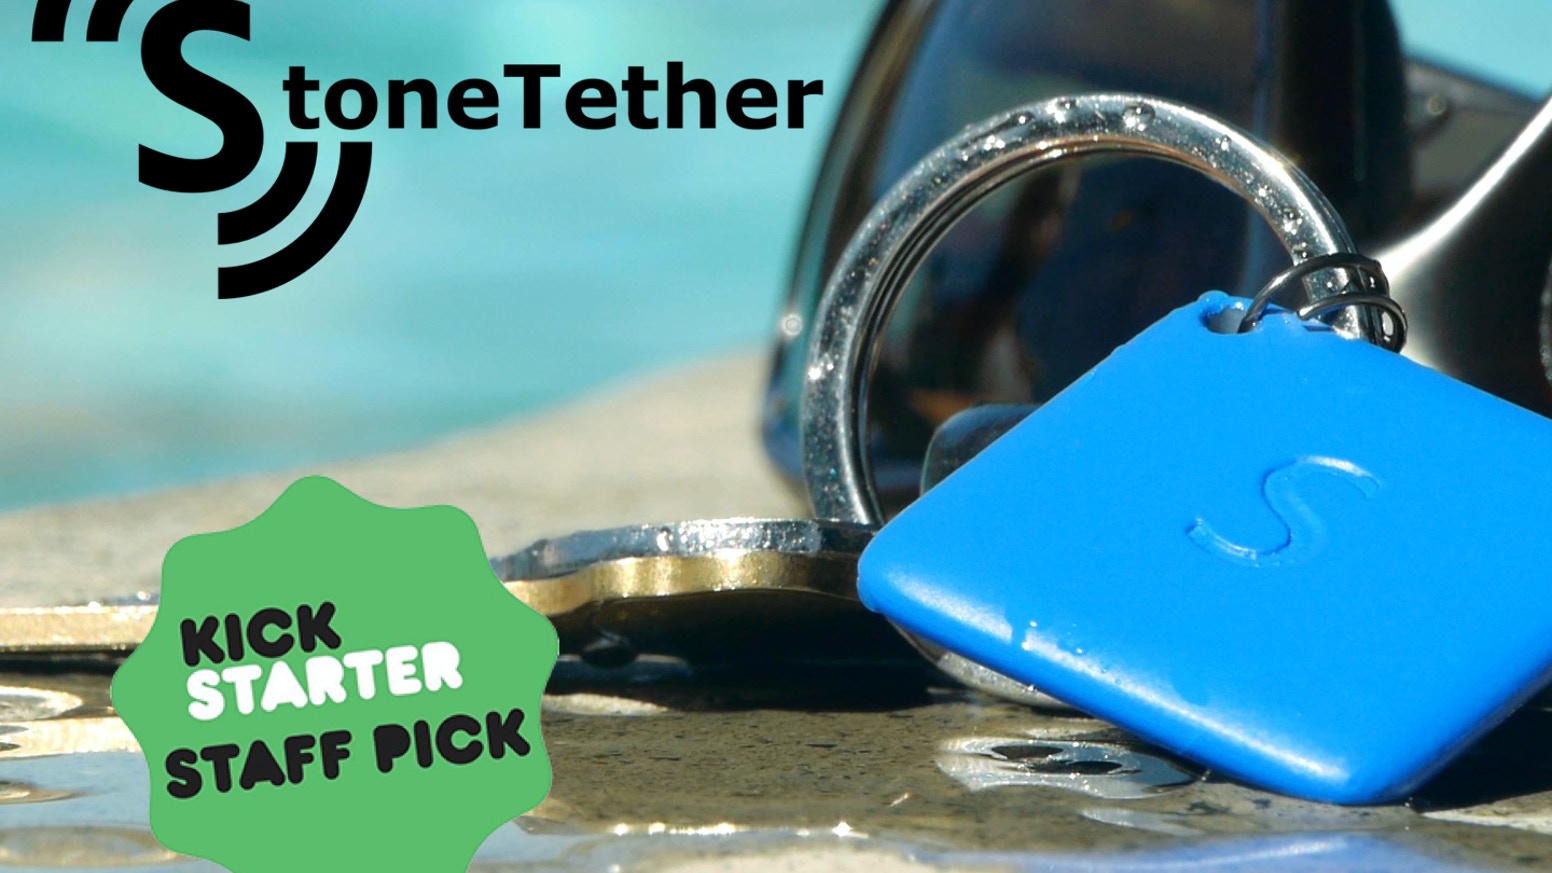 Ever Lose Your Keys, Worry About Losing Sight of Your Children, or Forget Something on a Trip?  No Longer, StoneTether Has You Covered!